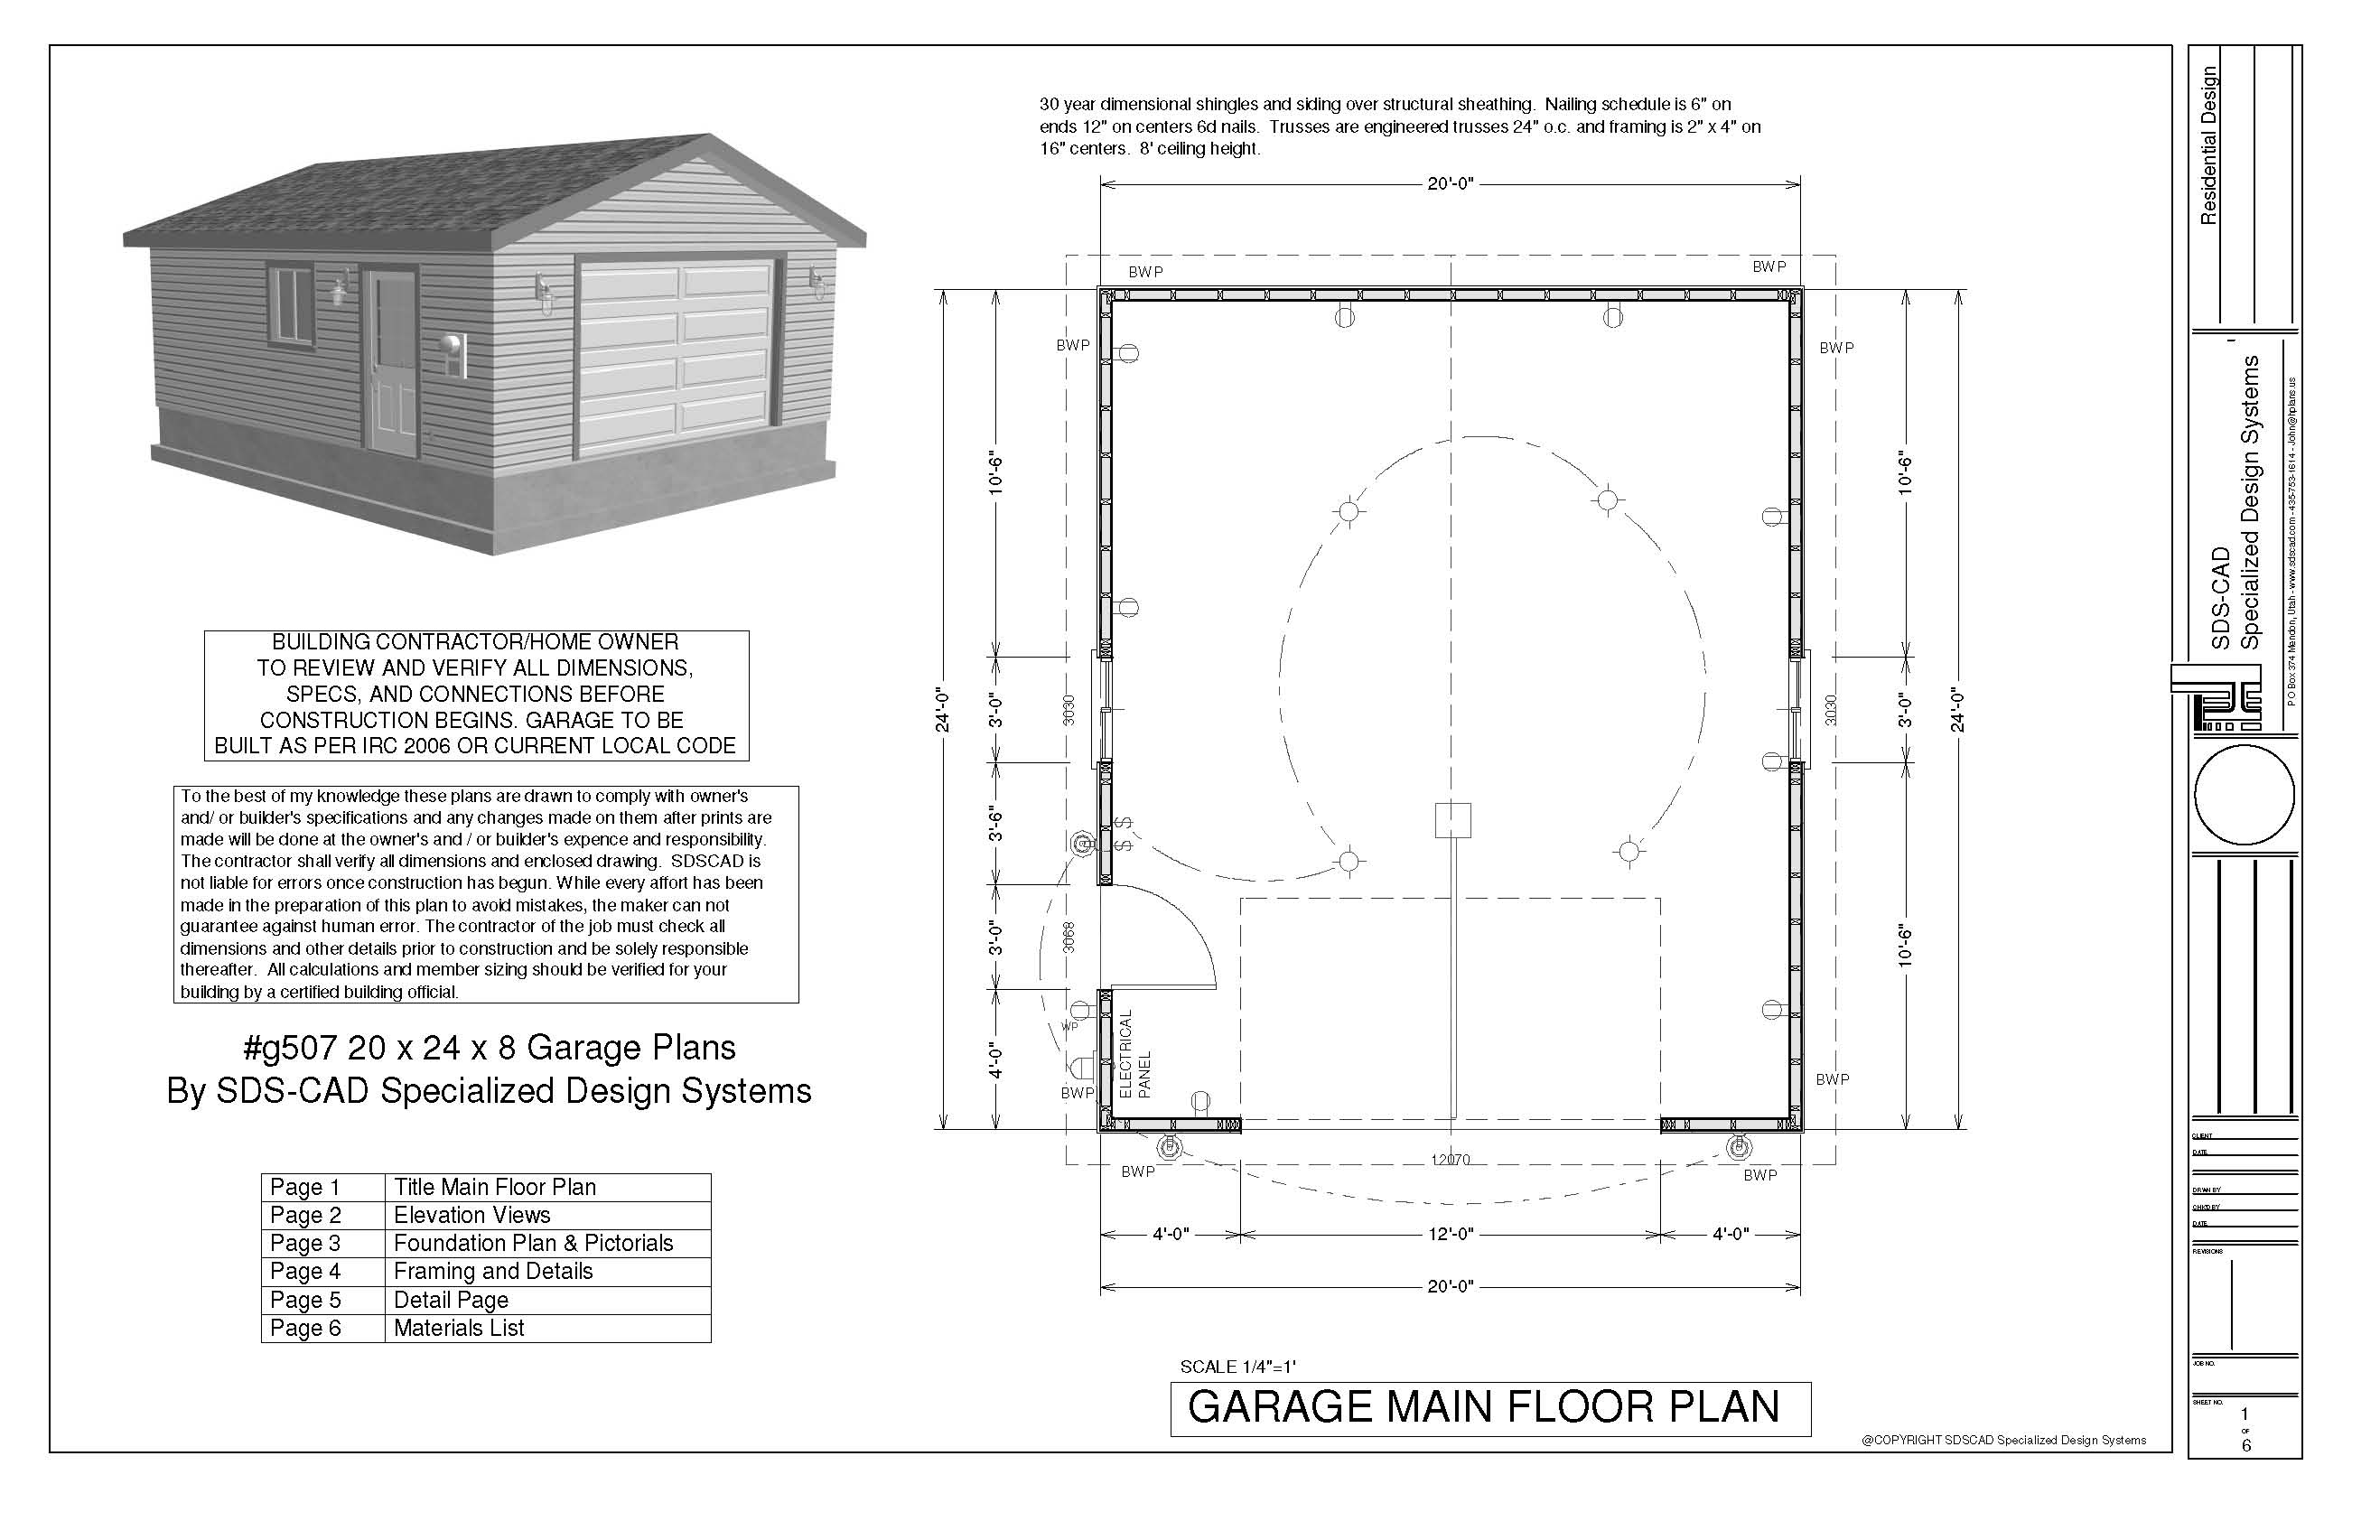 G507 20 x 24 x 8 garage plans 20 x 24 garage plans for 20 x 24 garage plans with loft